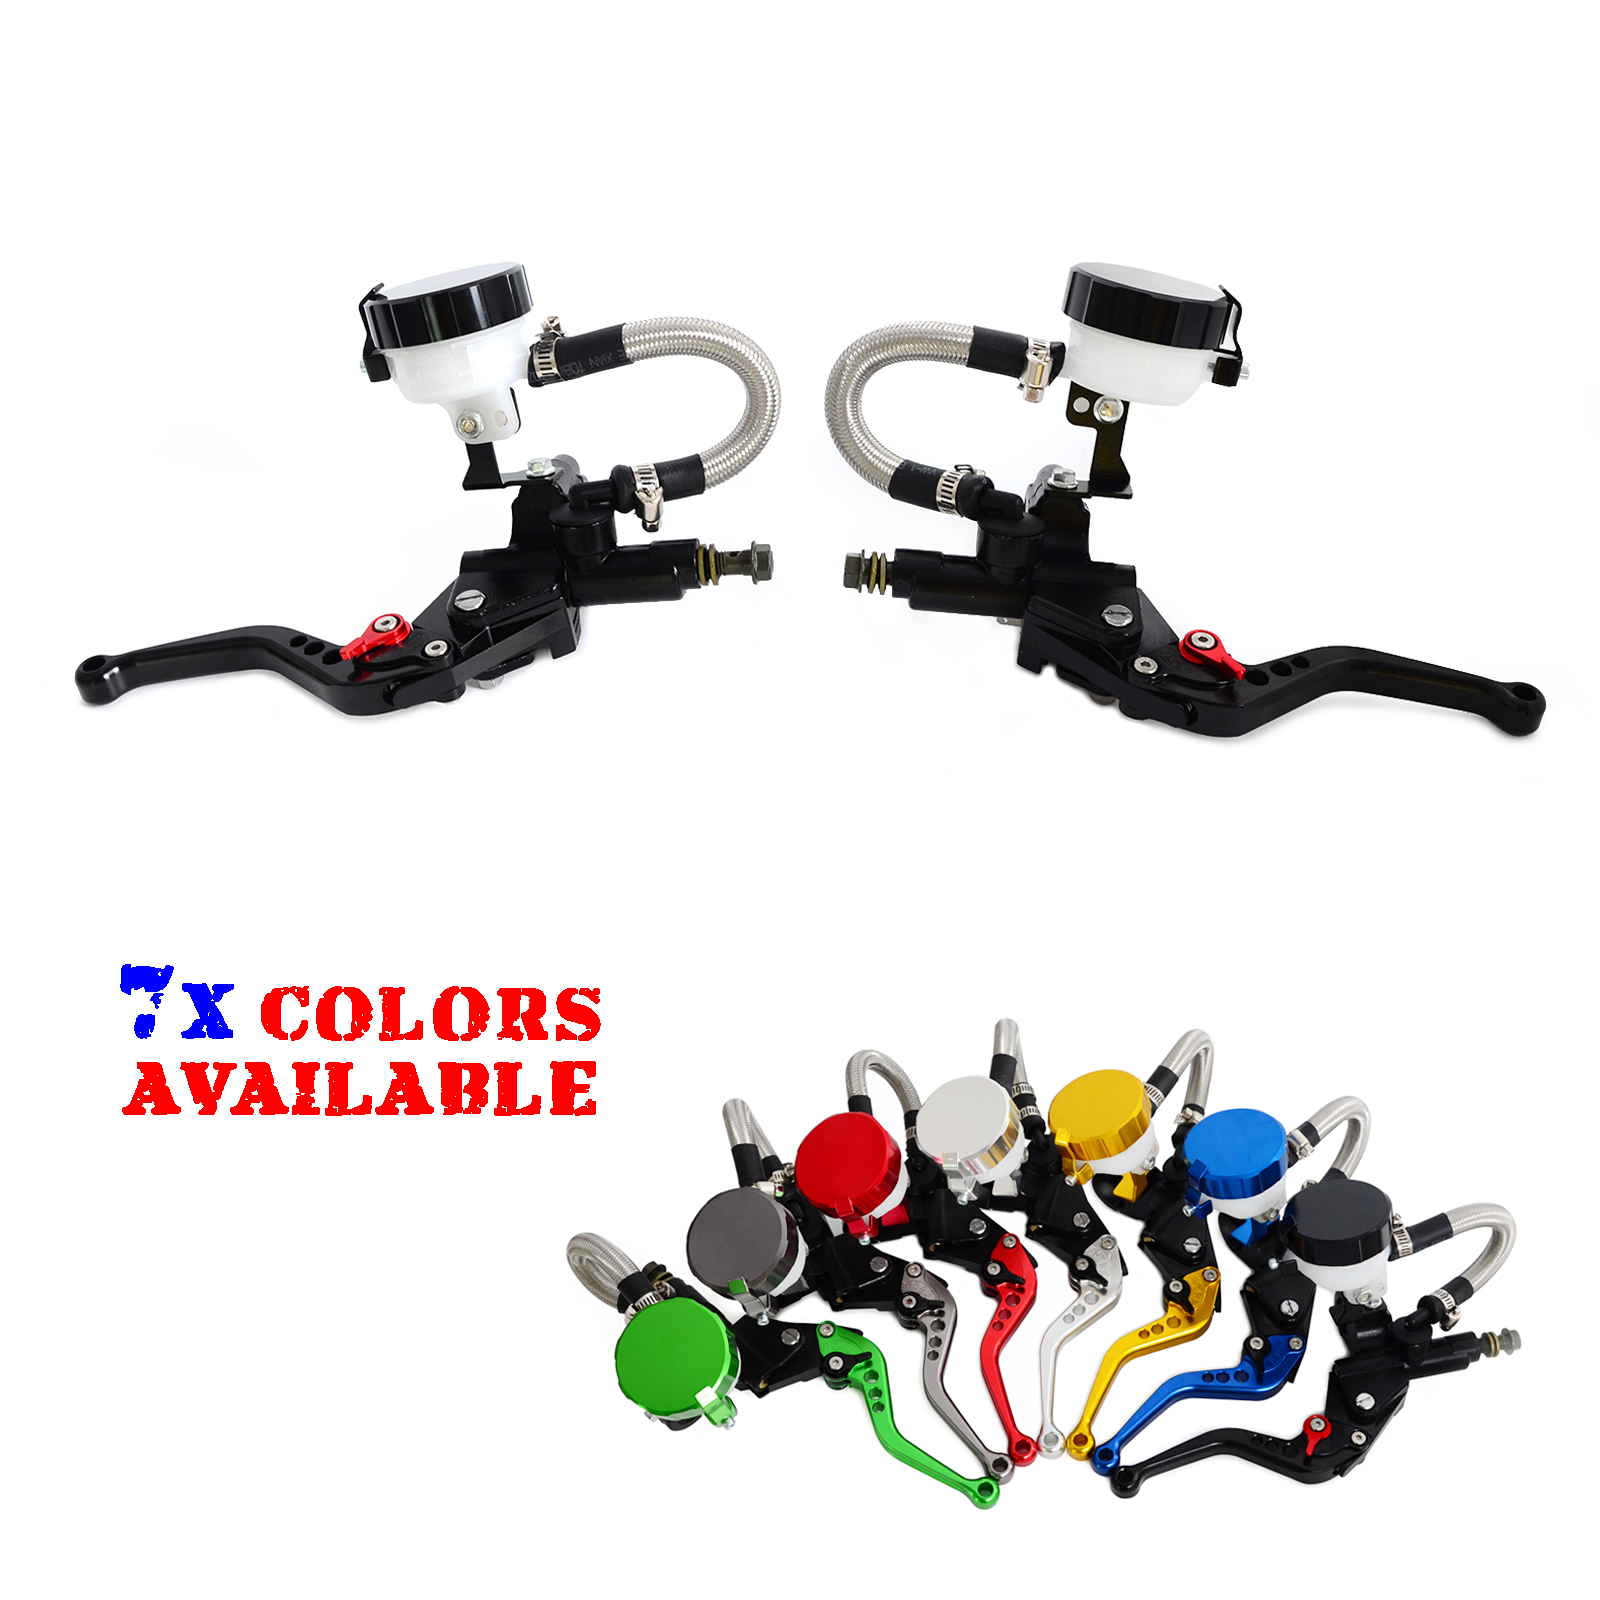 NICECNC Universal Motorcycle 7/8Clutch Brake Levers Master Cylinder Oil Fluid Reservoir Motocross Enduro Supermoto Dirt Bike crf250r 250x 450r 450x dirt bike motocross enduro modify cnc billet part brake reservoir cover brake hose clamp engine plugs kit